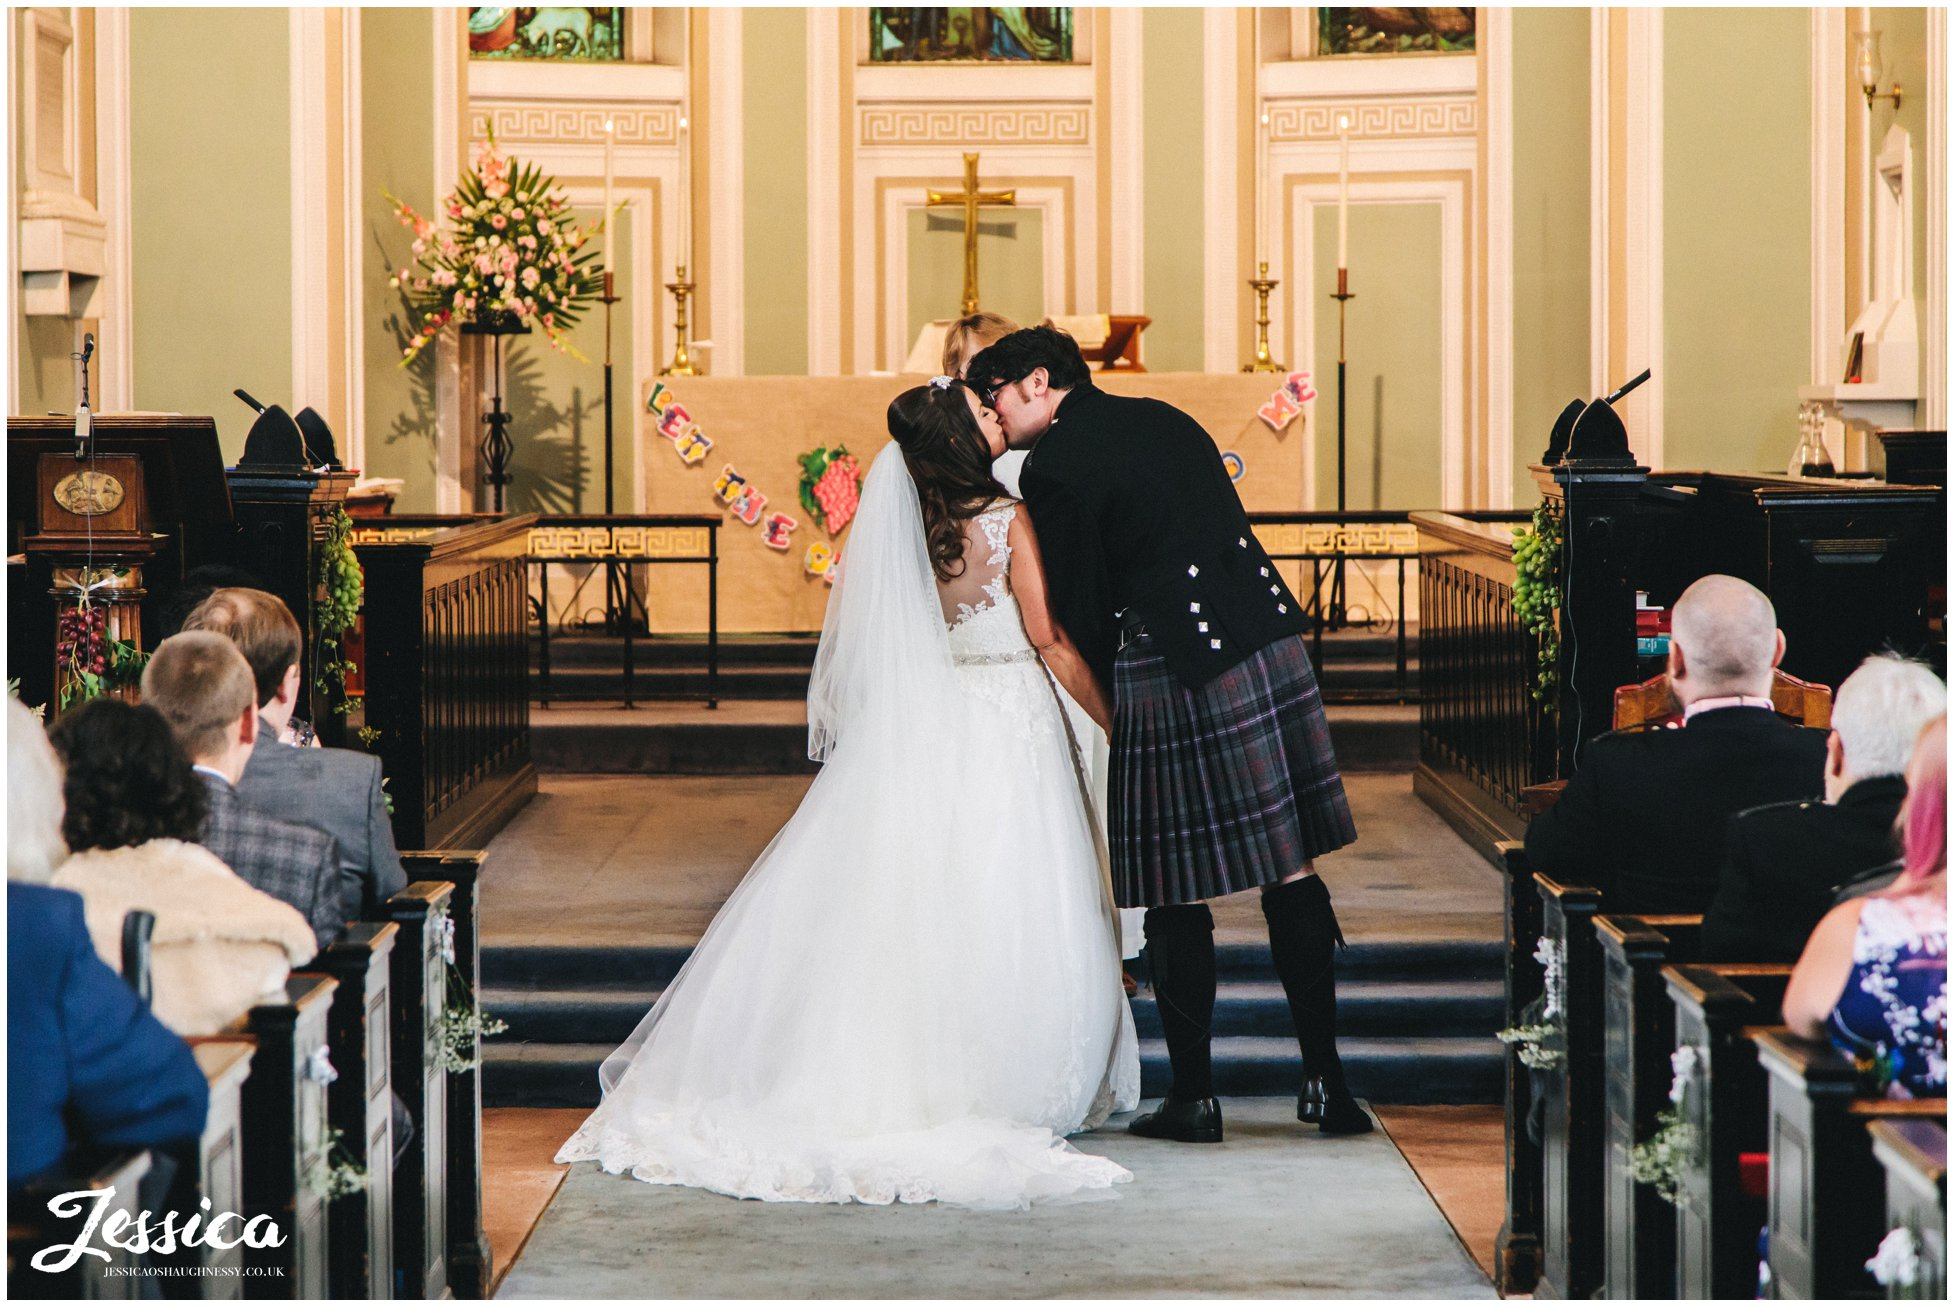 bride and groom share first kiss at the church alter